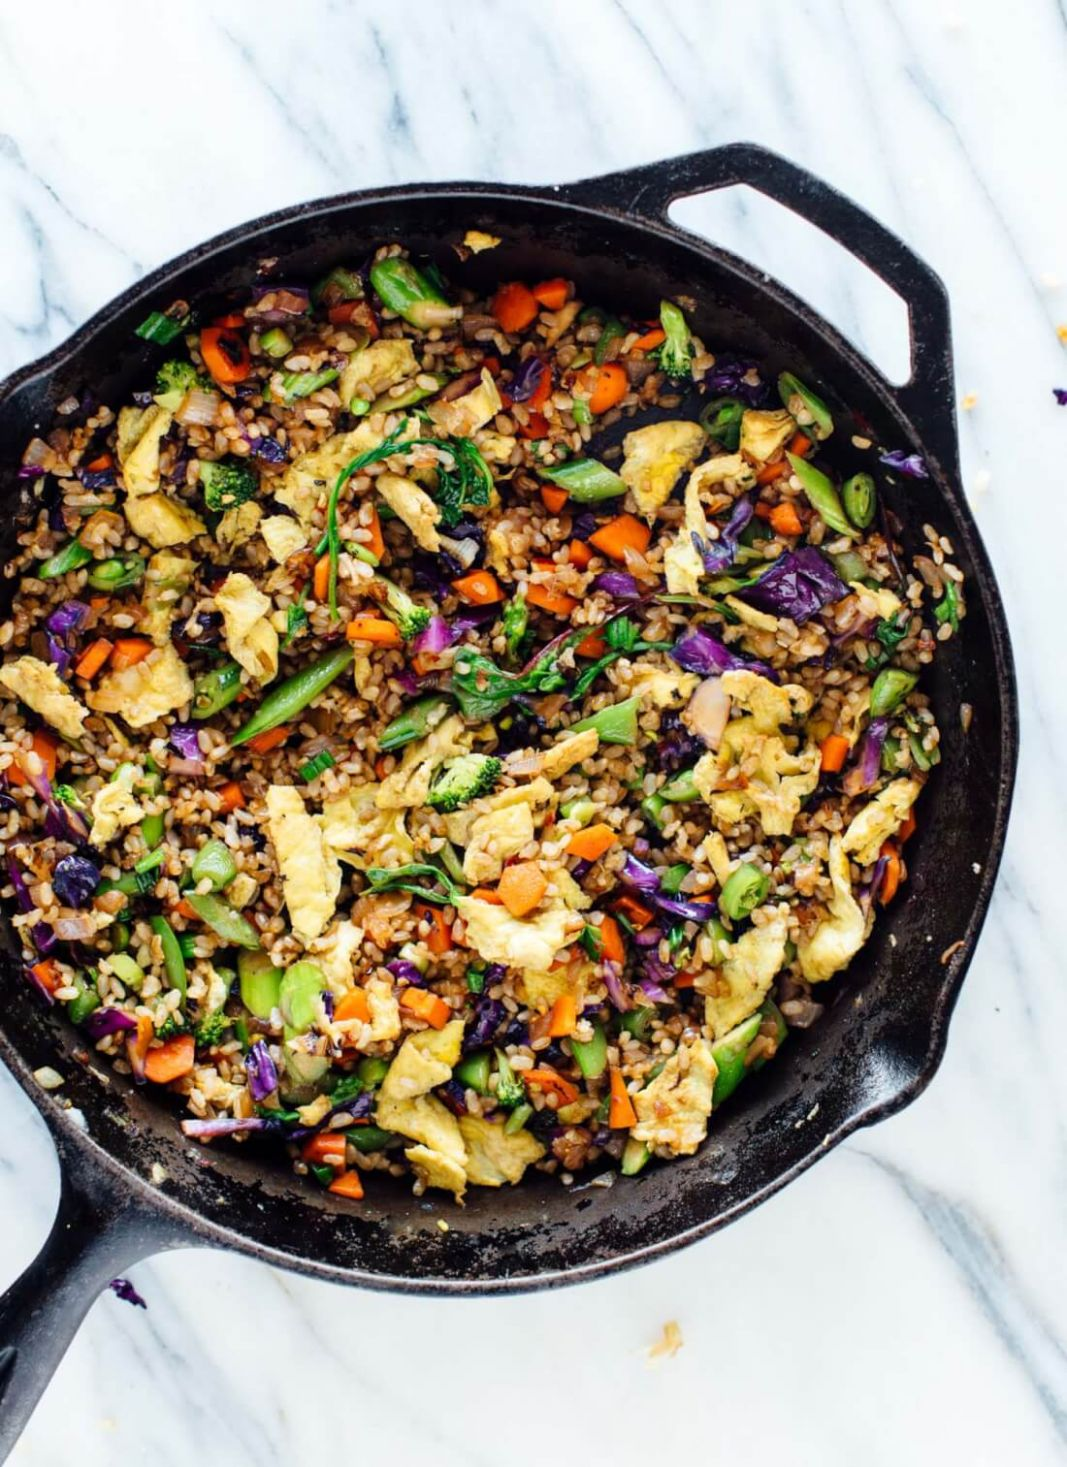 9 Best Vegetarian Recipes - Cookie and Kate - Cooking Recipes Vegetarian